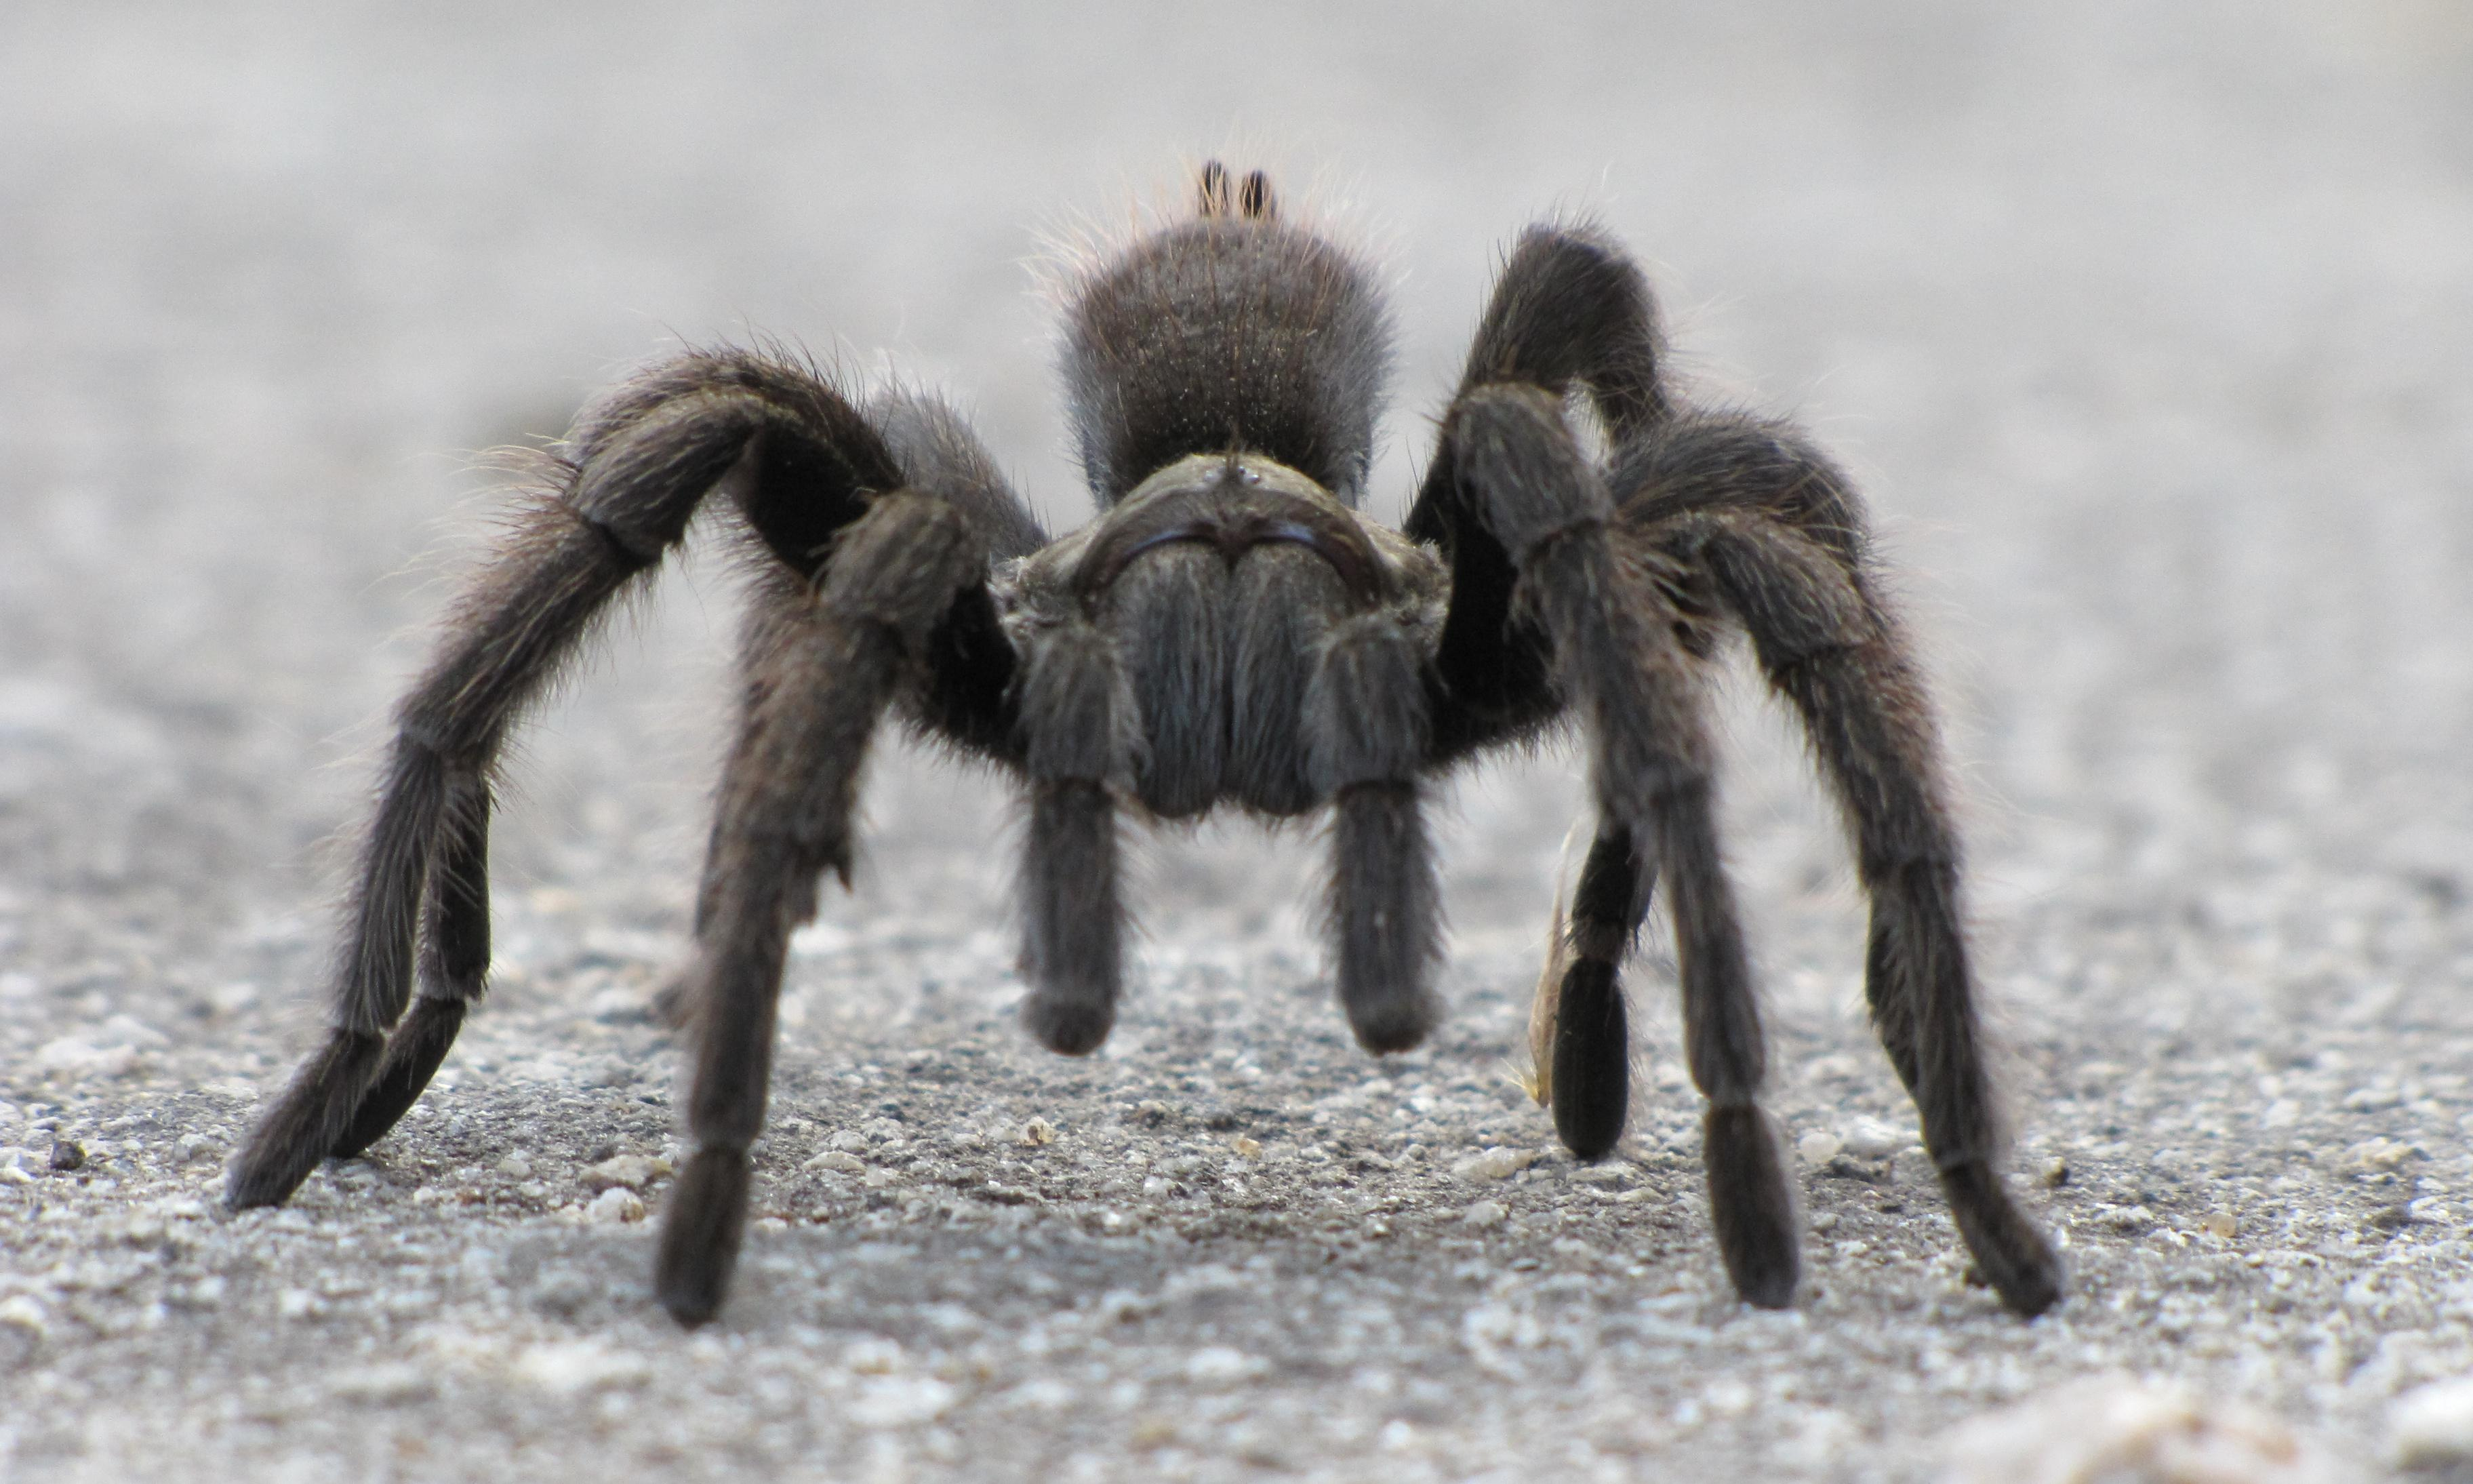 'Ding dong, it's time': dancing tarantulas emerge in droves to mate in western US